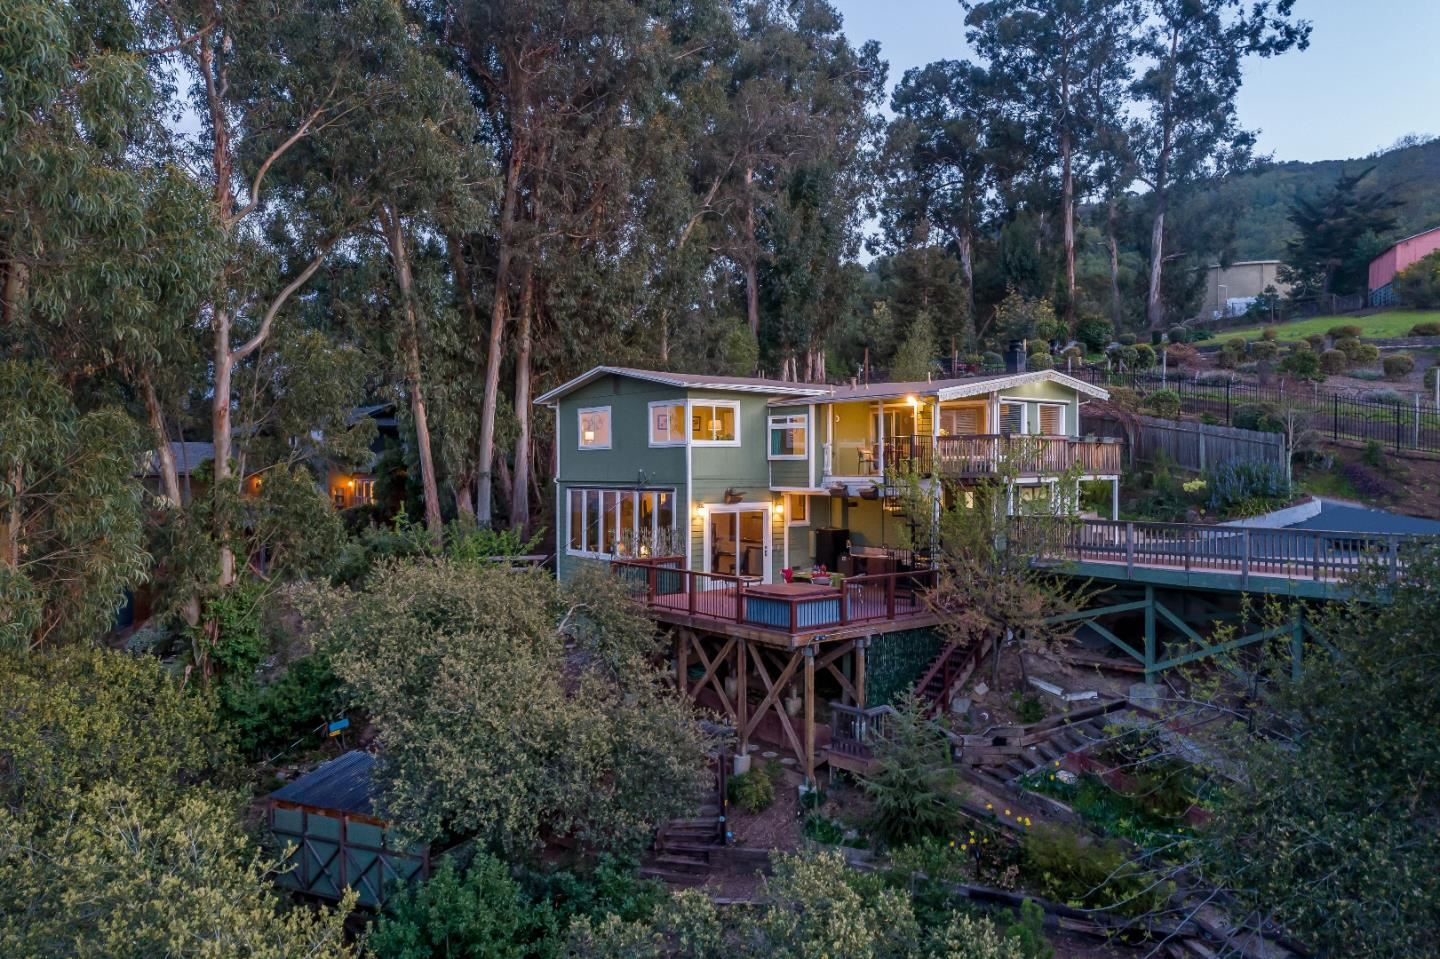 Photo for 18650 OVERLOOK RD, LOS GATOS, CA 95030 (MLS # ML81836635)